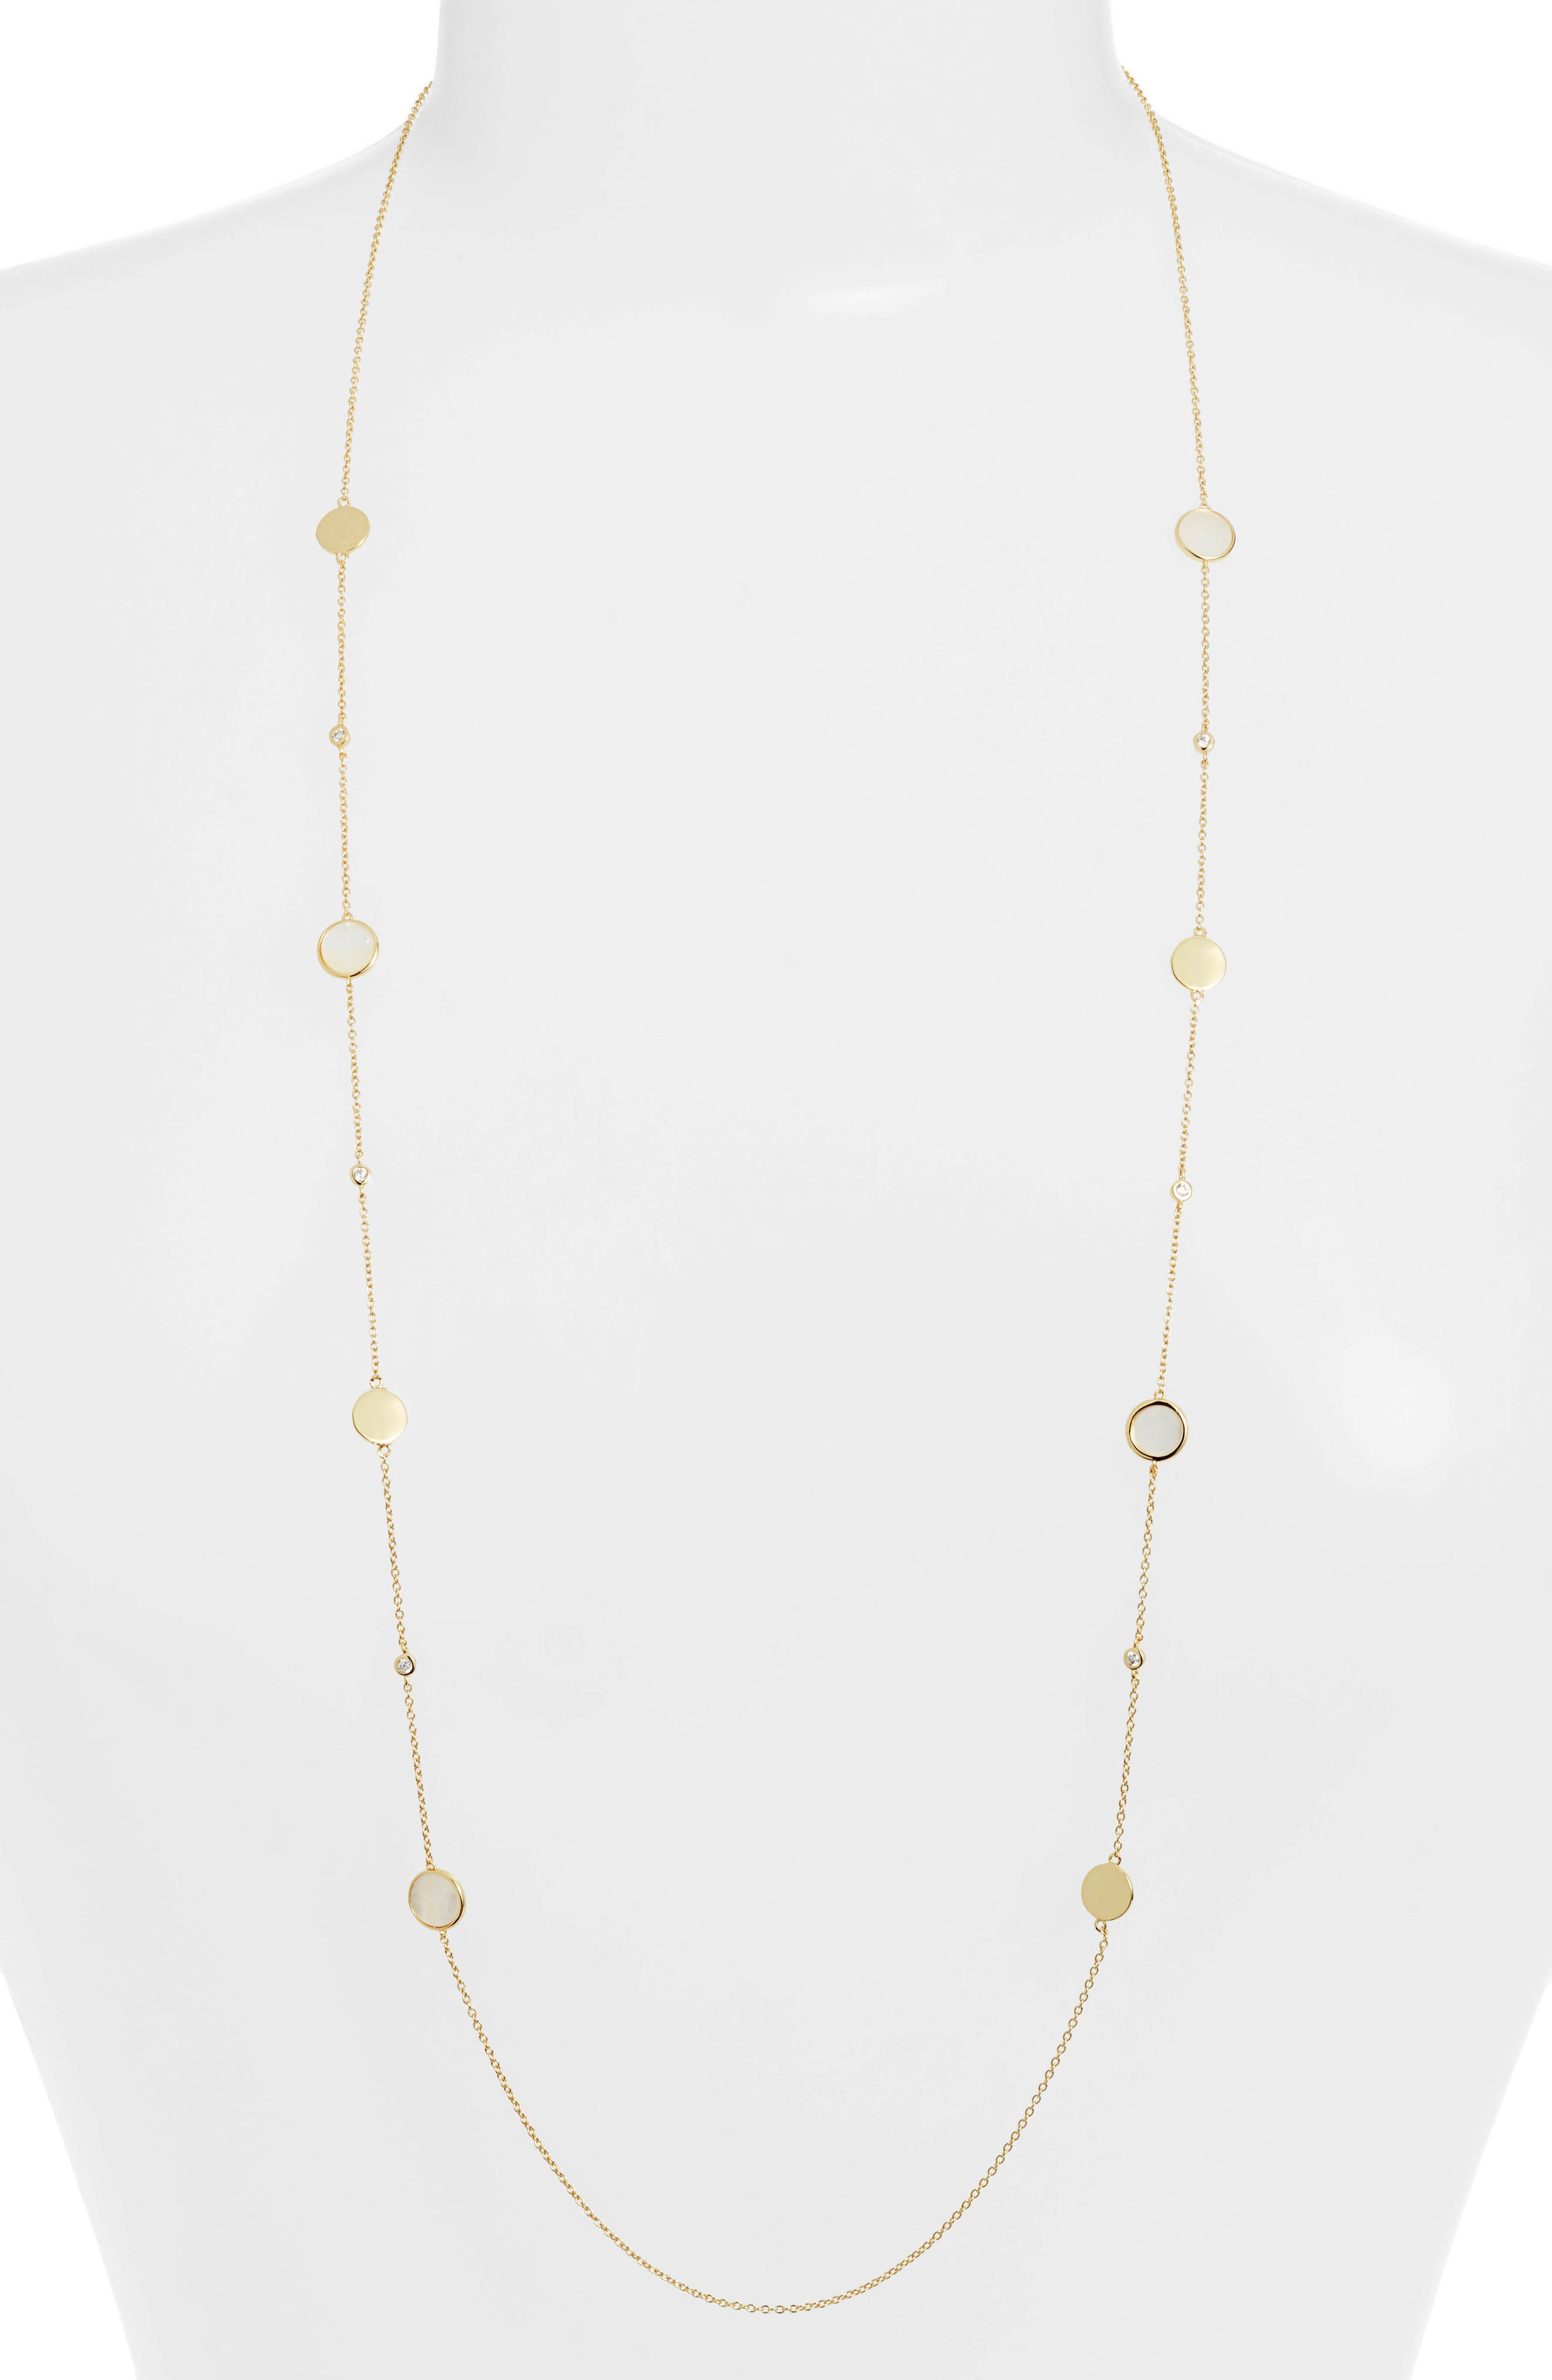 Mother of Pearl Station Necklace,                             Main thumbnail 1, color,                             MOTHER OF PEARL/ GOLD